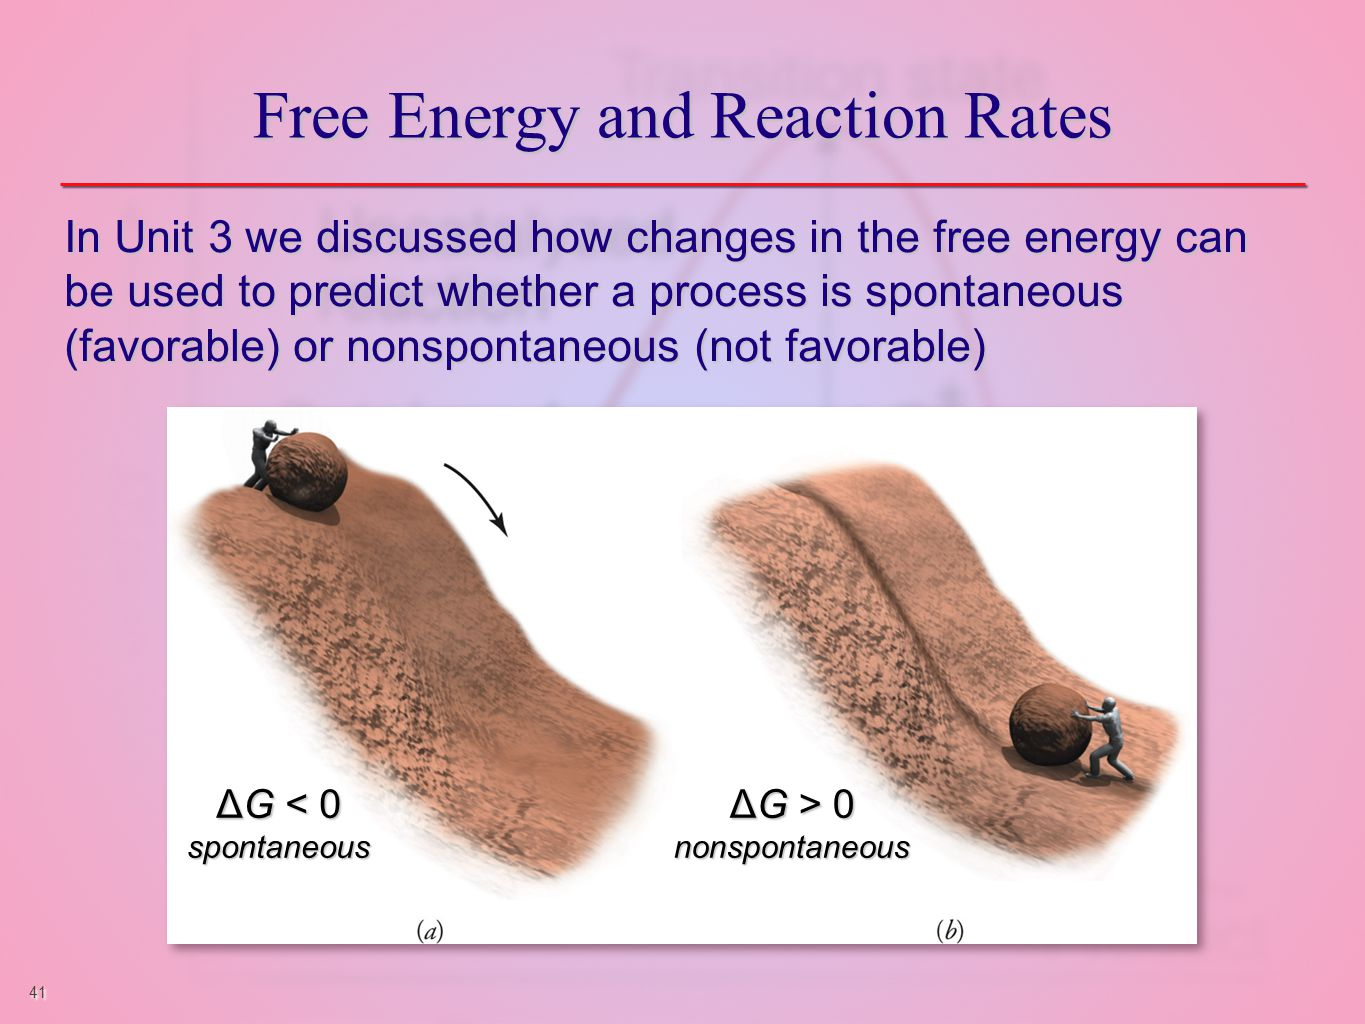 41 Free Energy and Reaction Rates In Unit 3 we discussed how changes in the free energy can be used to predict whether a process is spontaneous (favorable) or nonspontaneous (not favorable) ΔG < 0 spontaneous spontaneous ΔG > 0 nonspontaneous nonspontaneous